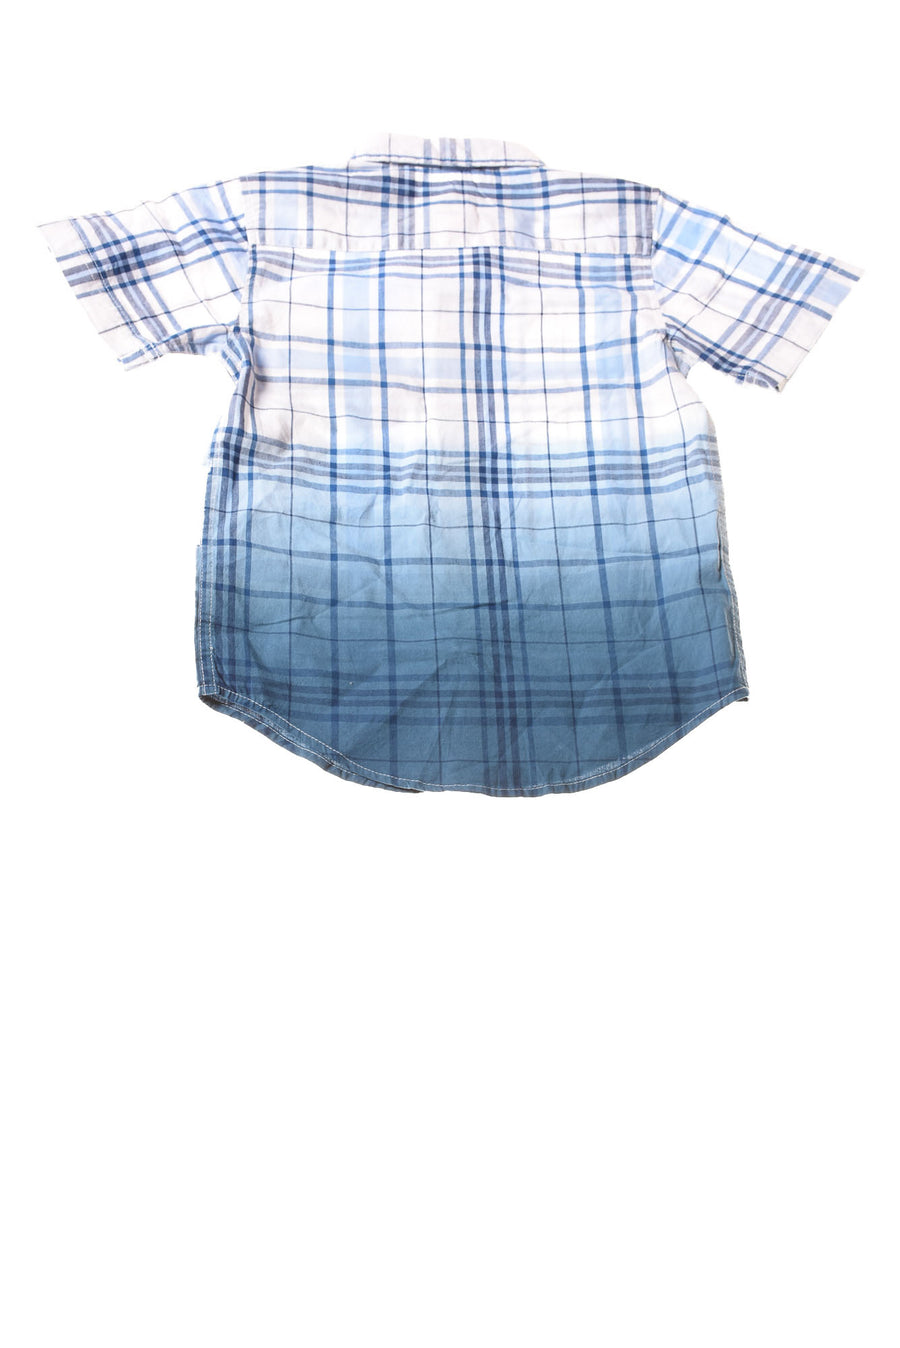 NEW Wrangler Toddler Boy's Shirt 4T-5T Blue / Plaid